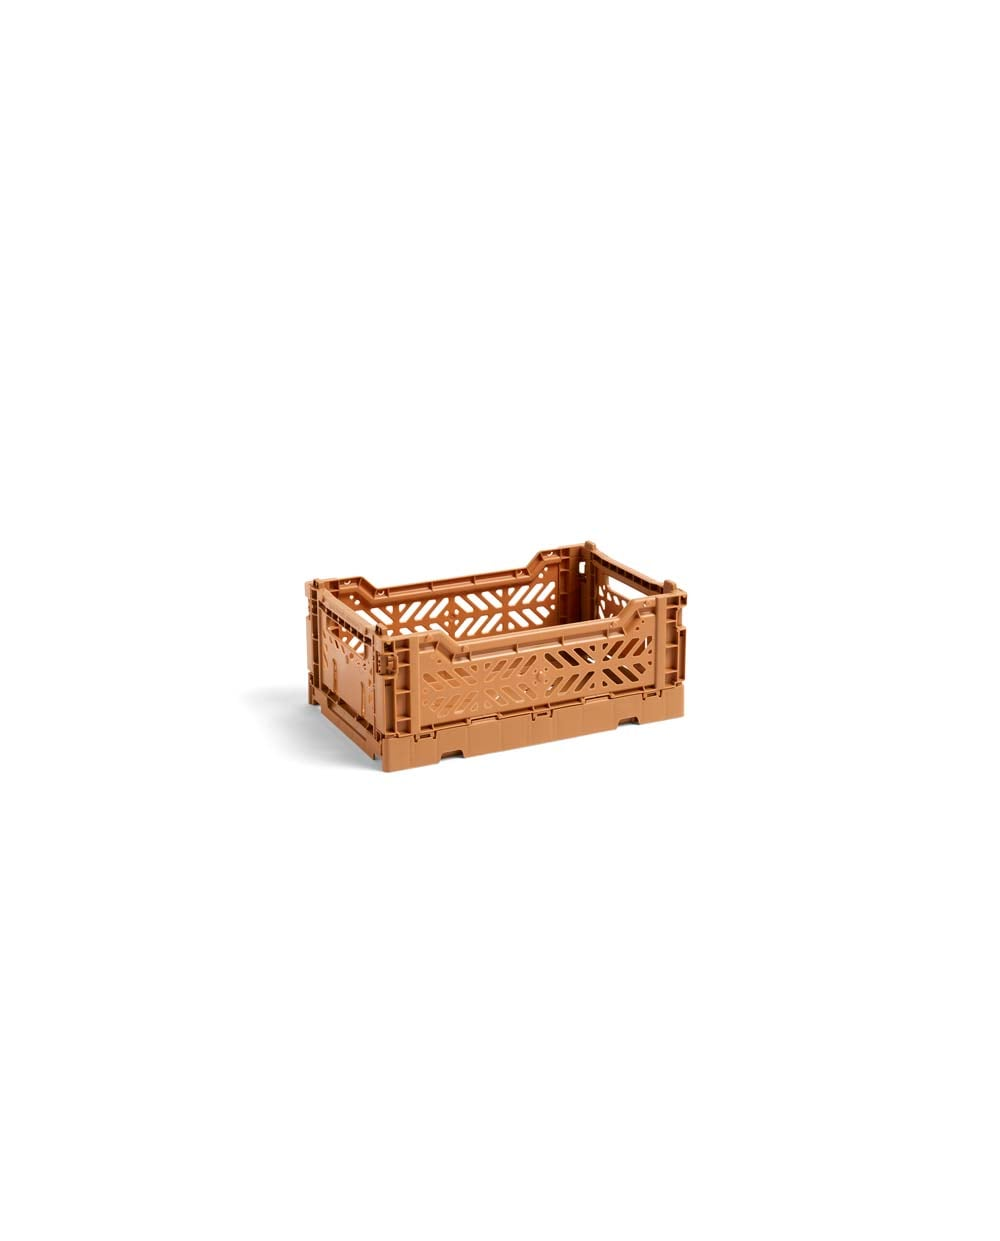 HAY 508329 Colour Crate S tan